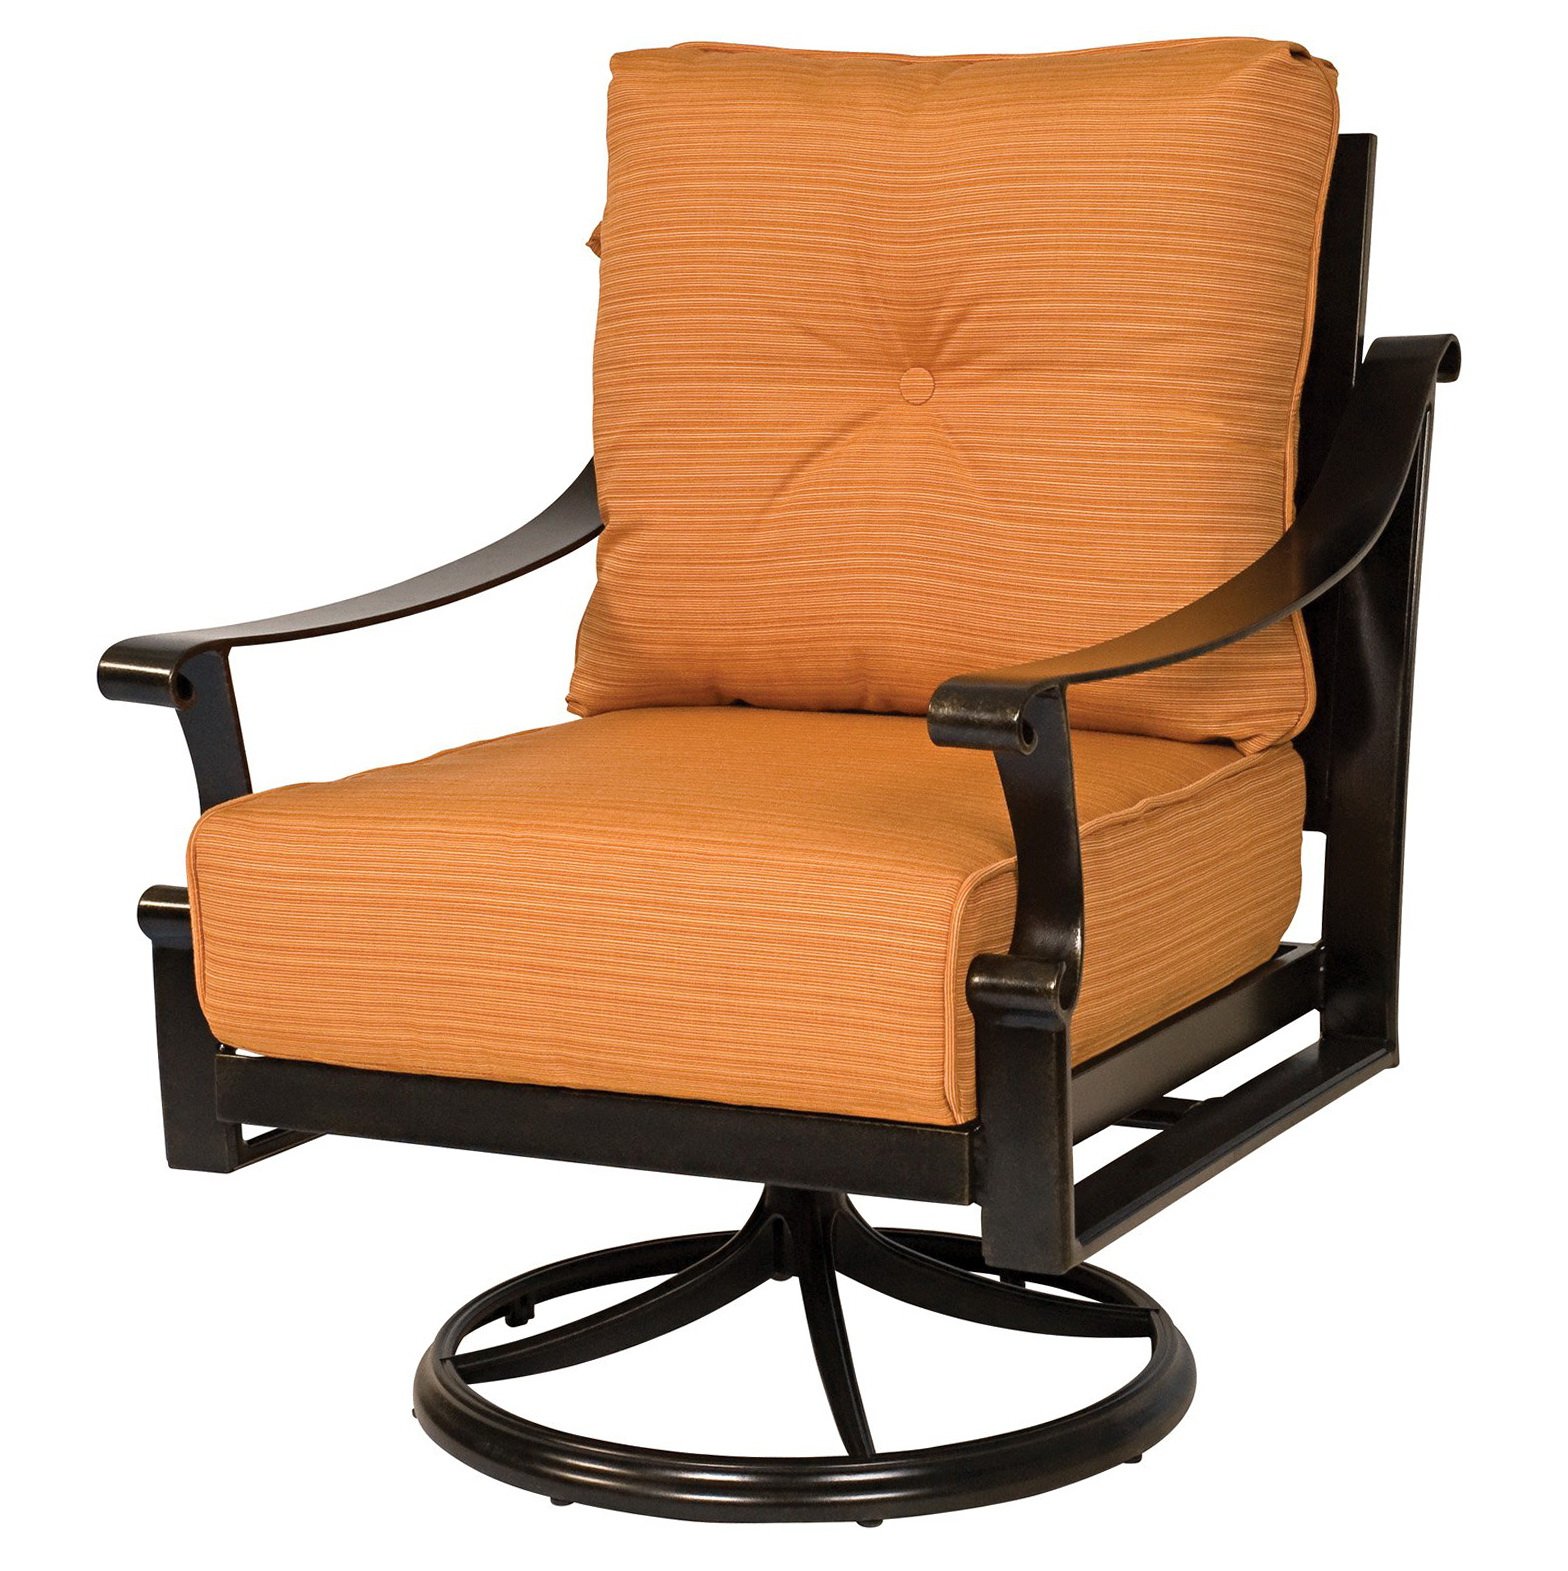 Swivel Rocker Cushion Patio Chairs Home Design Ideas